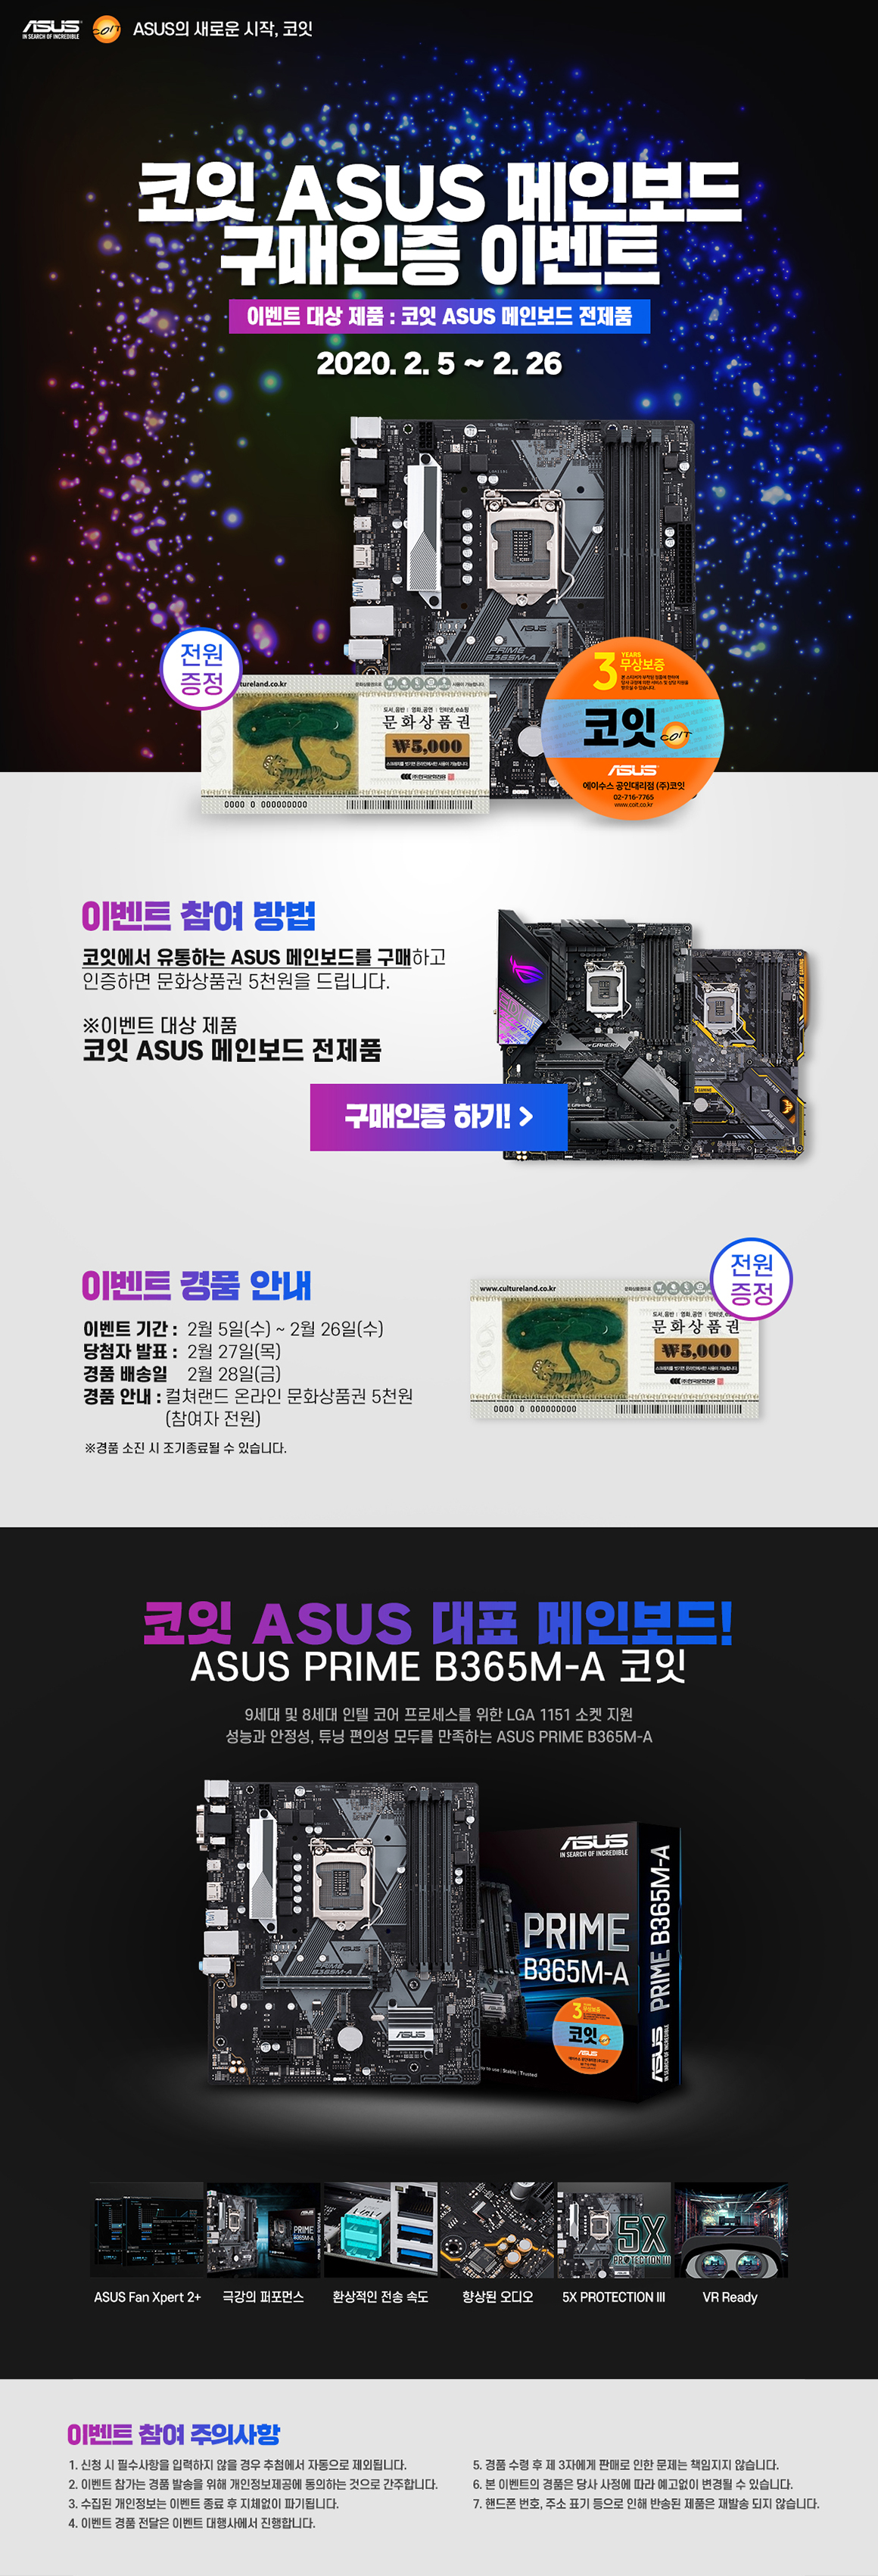 coit_asus_event_0205.jpg